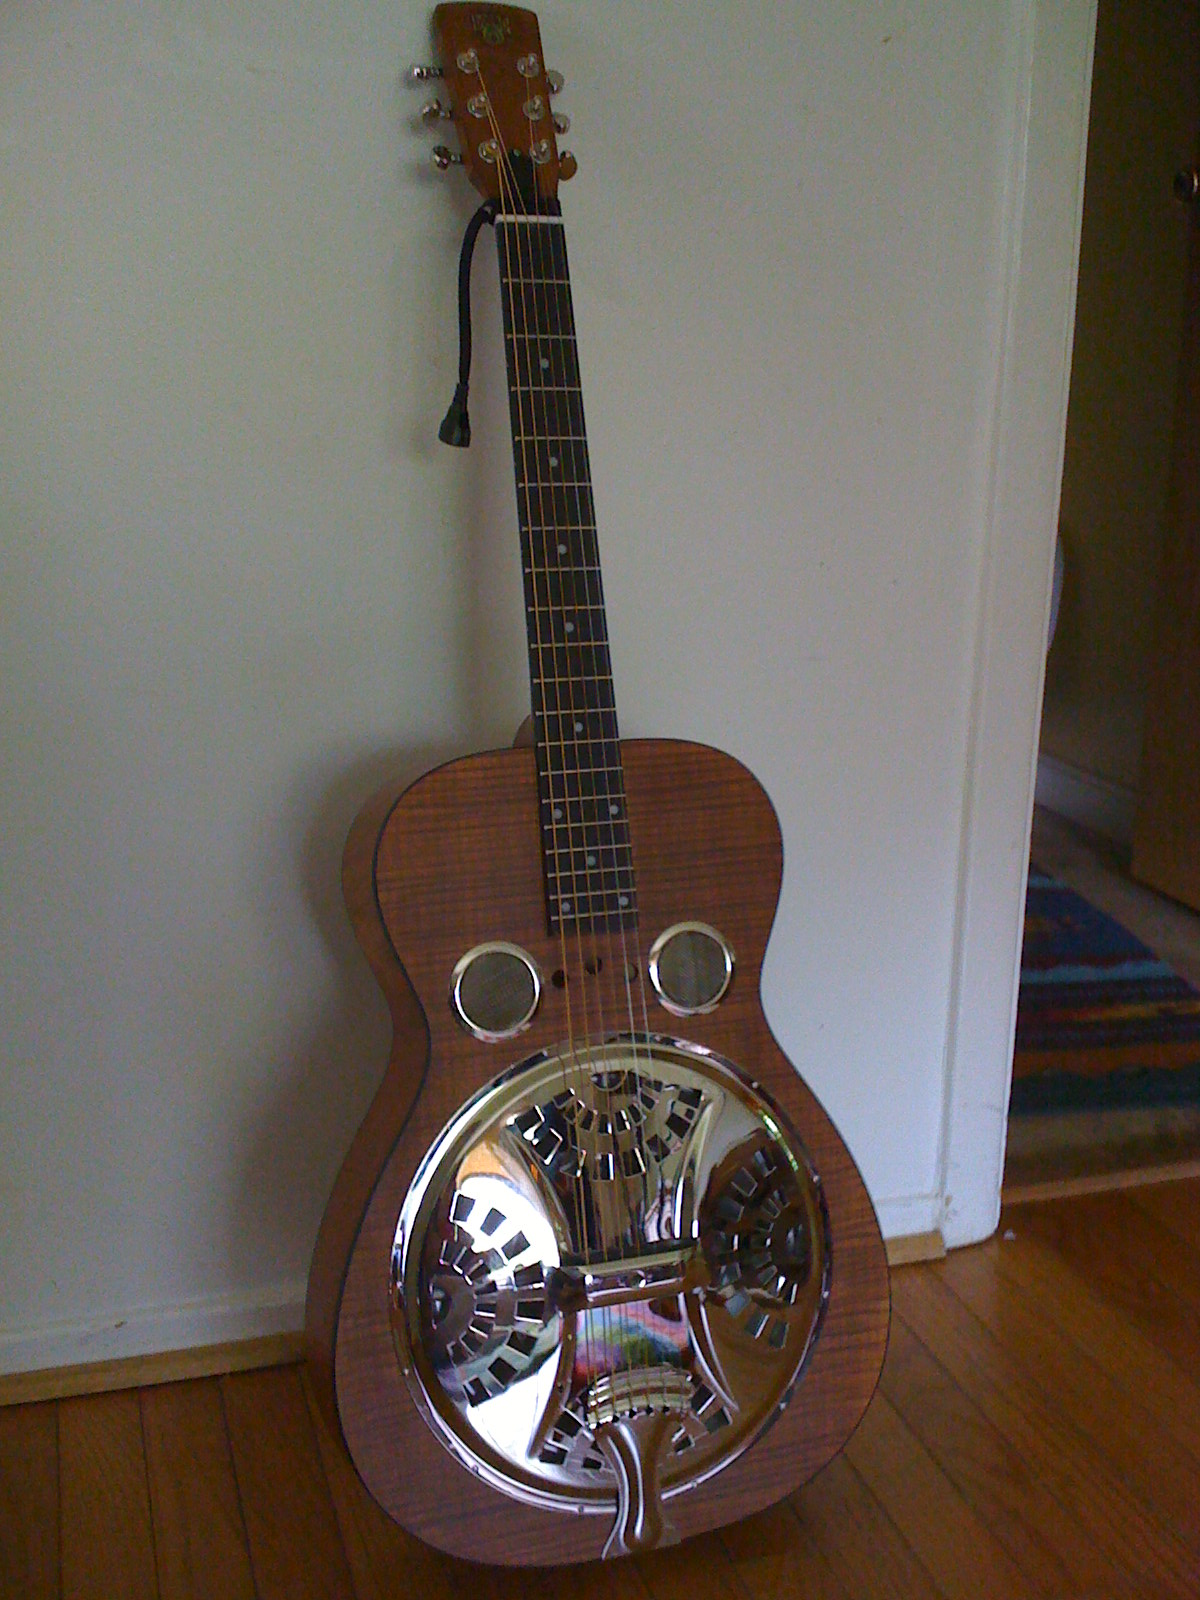 A very fun instrument - need to write some new songs on it